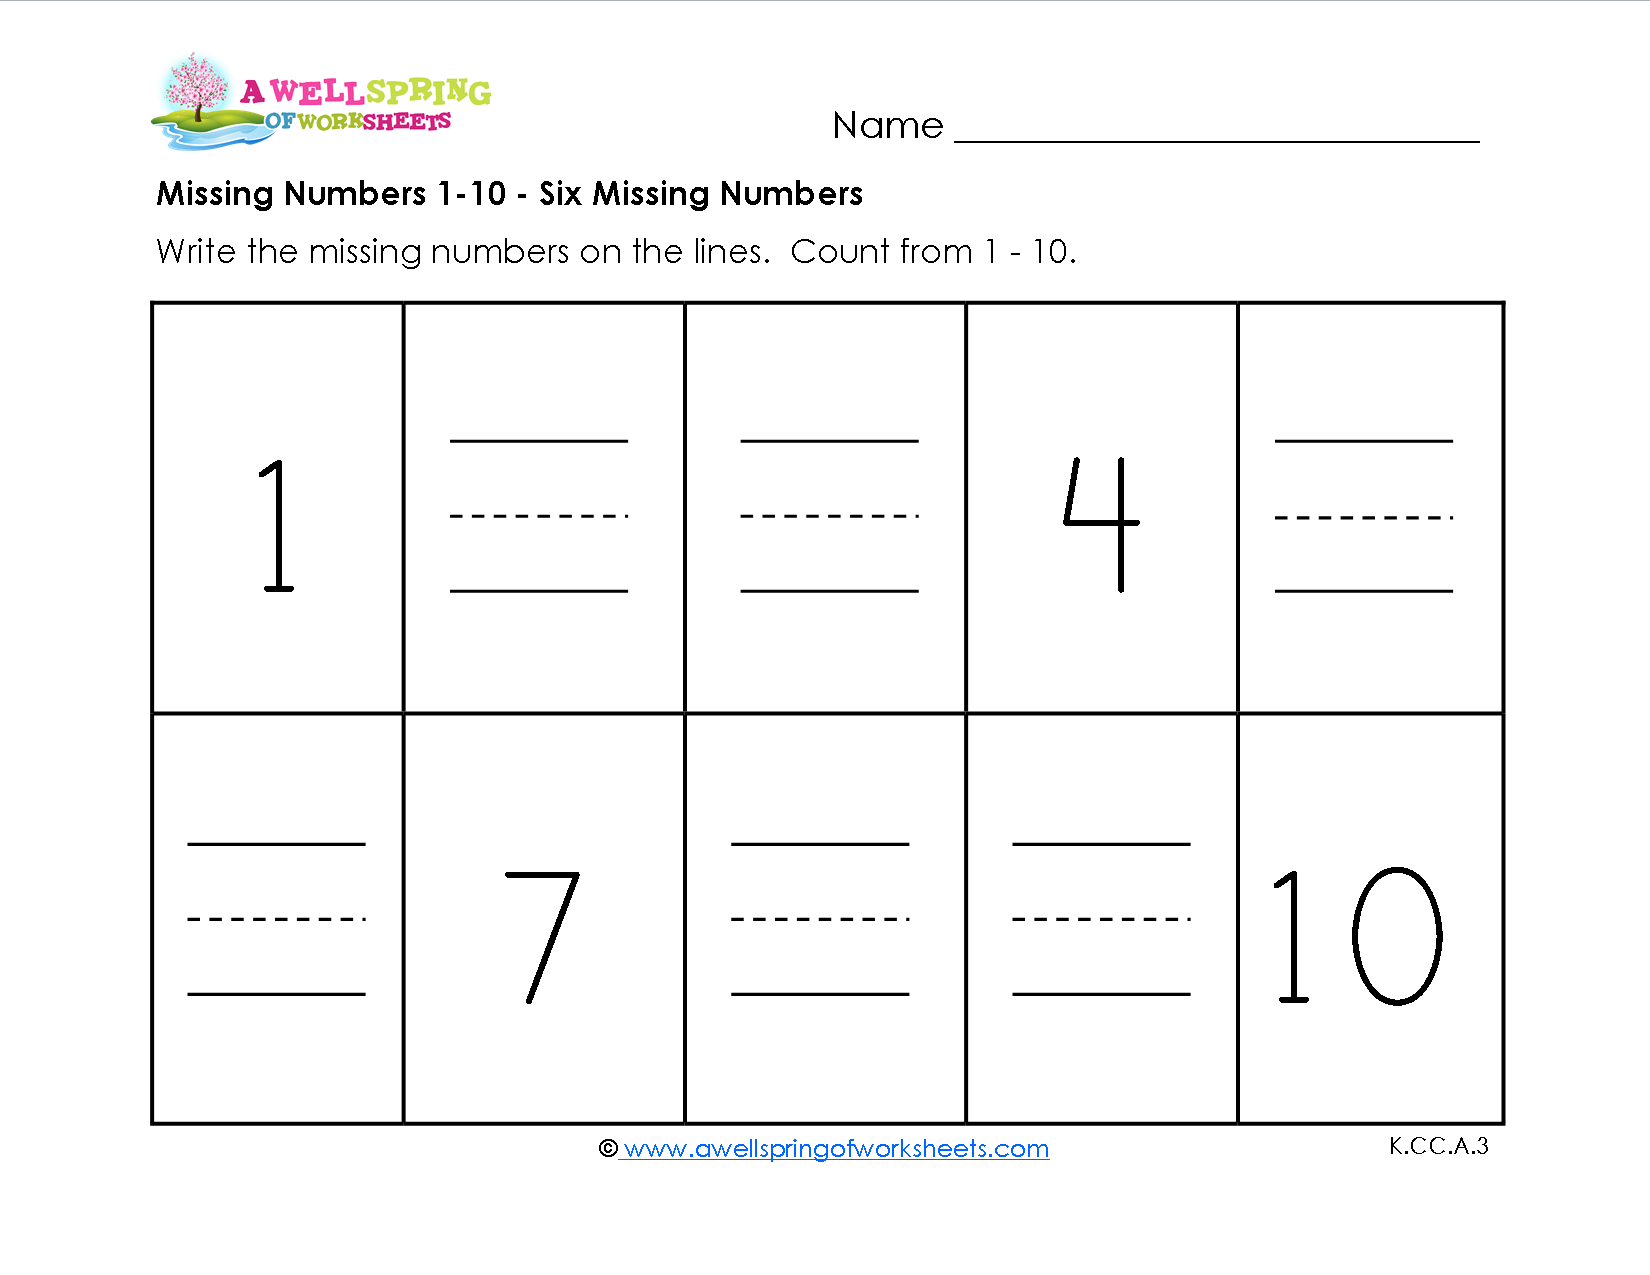 Missing Numbers 1 10 Kids Fill In The Missing Numbers As